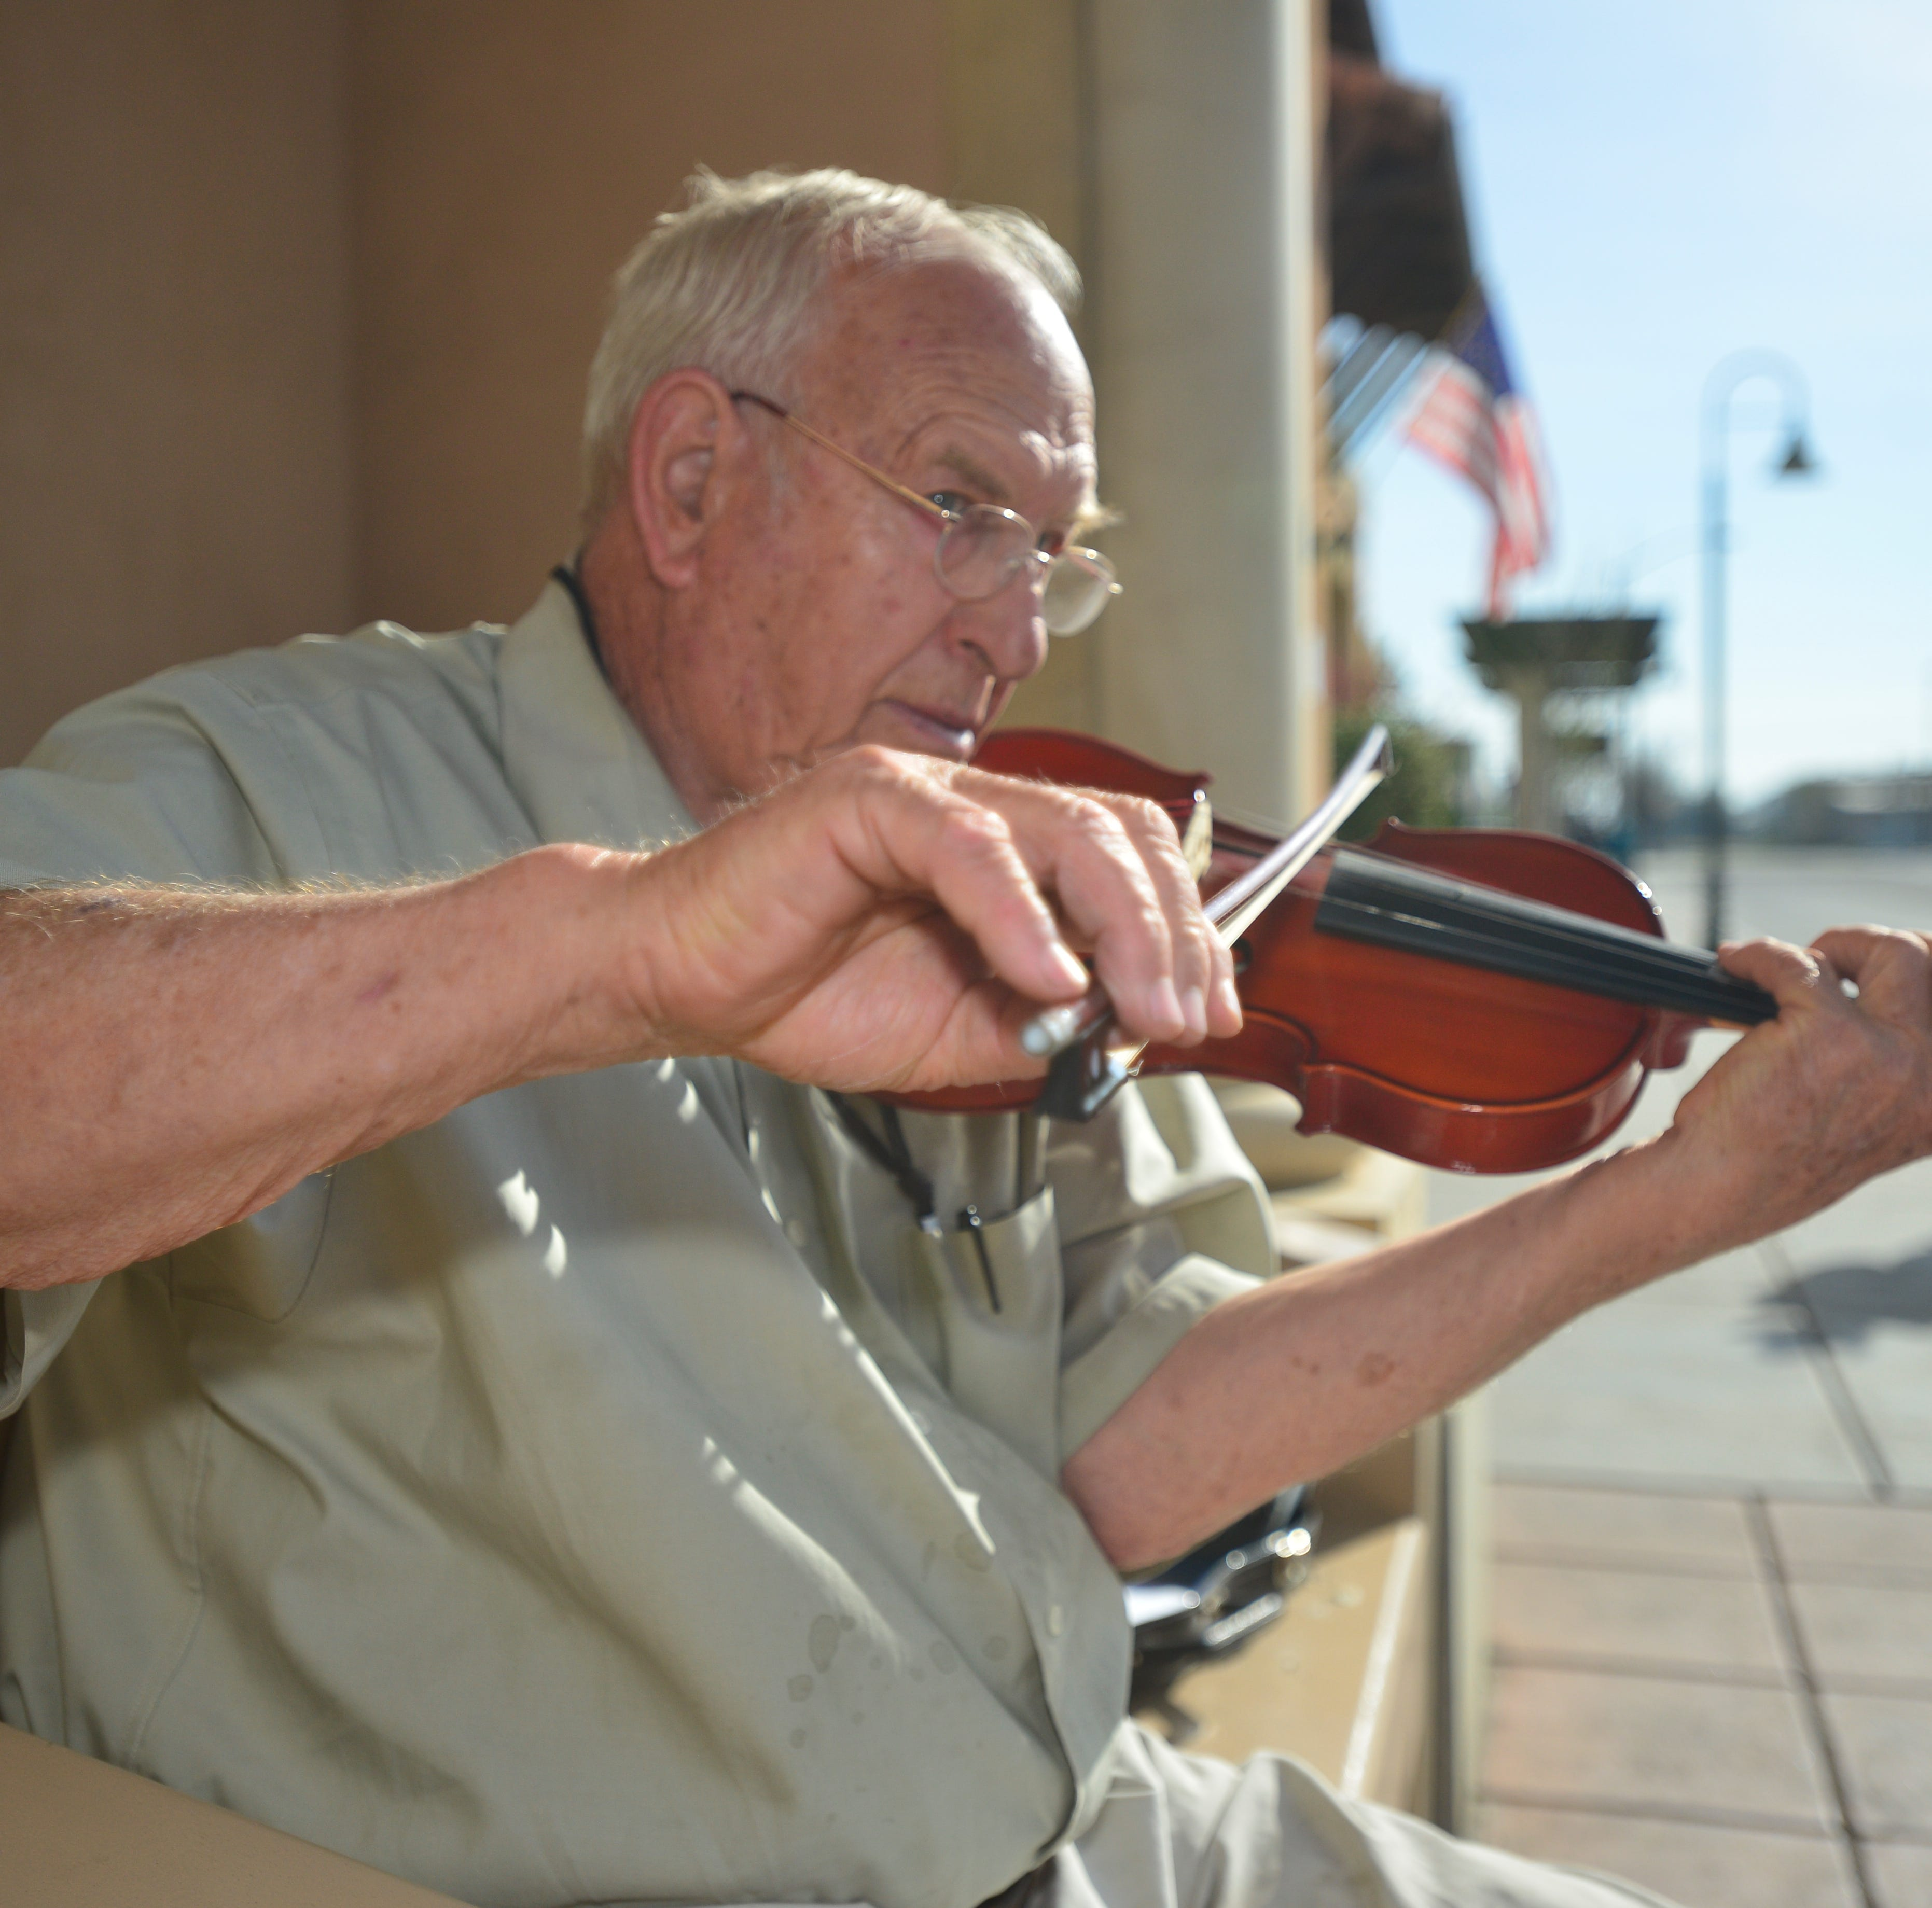 Downtown Visalia's self-taught violinist dies